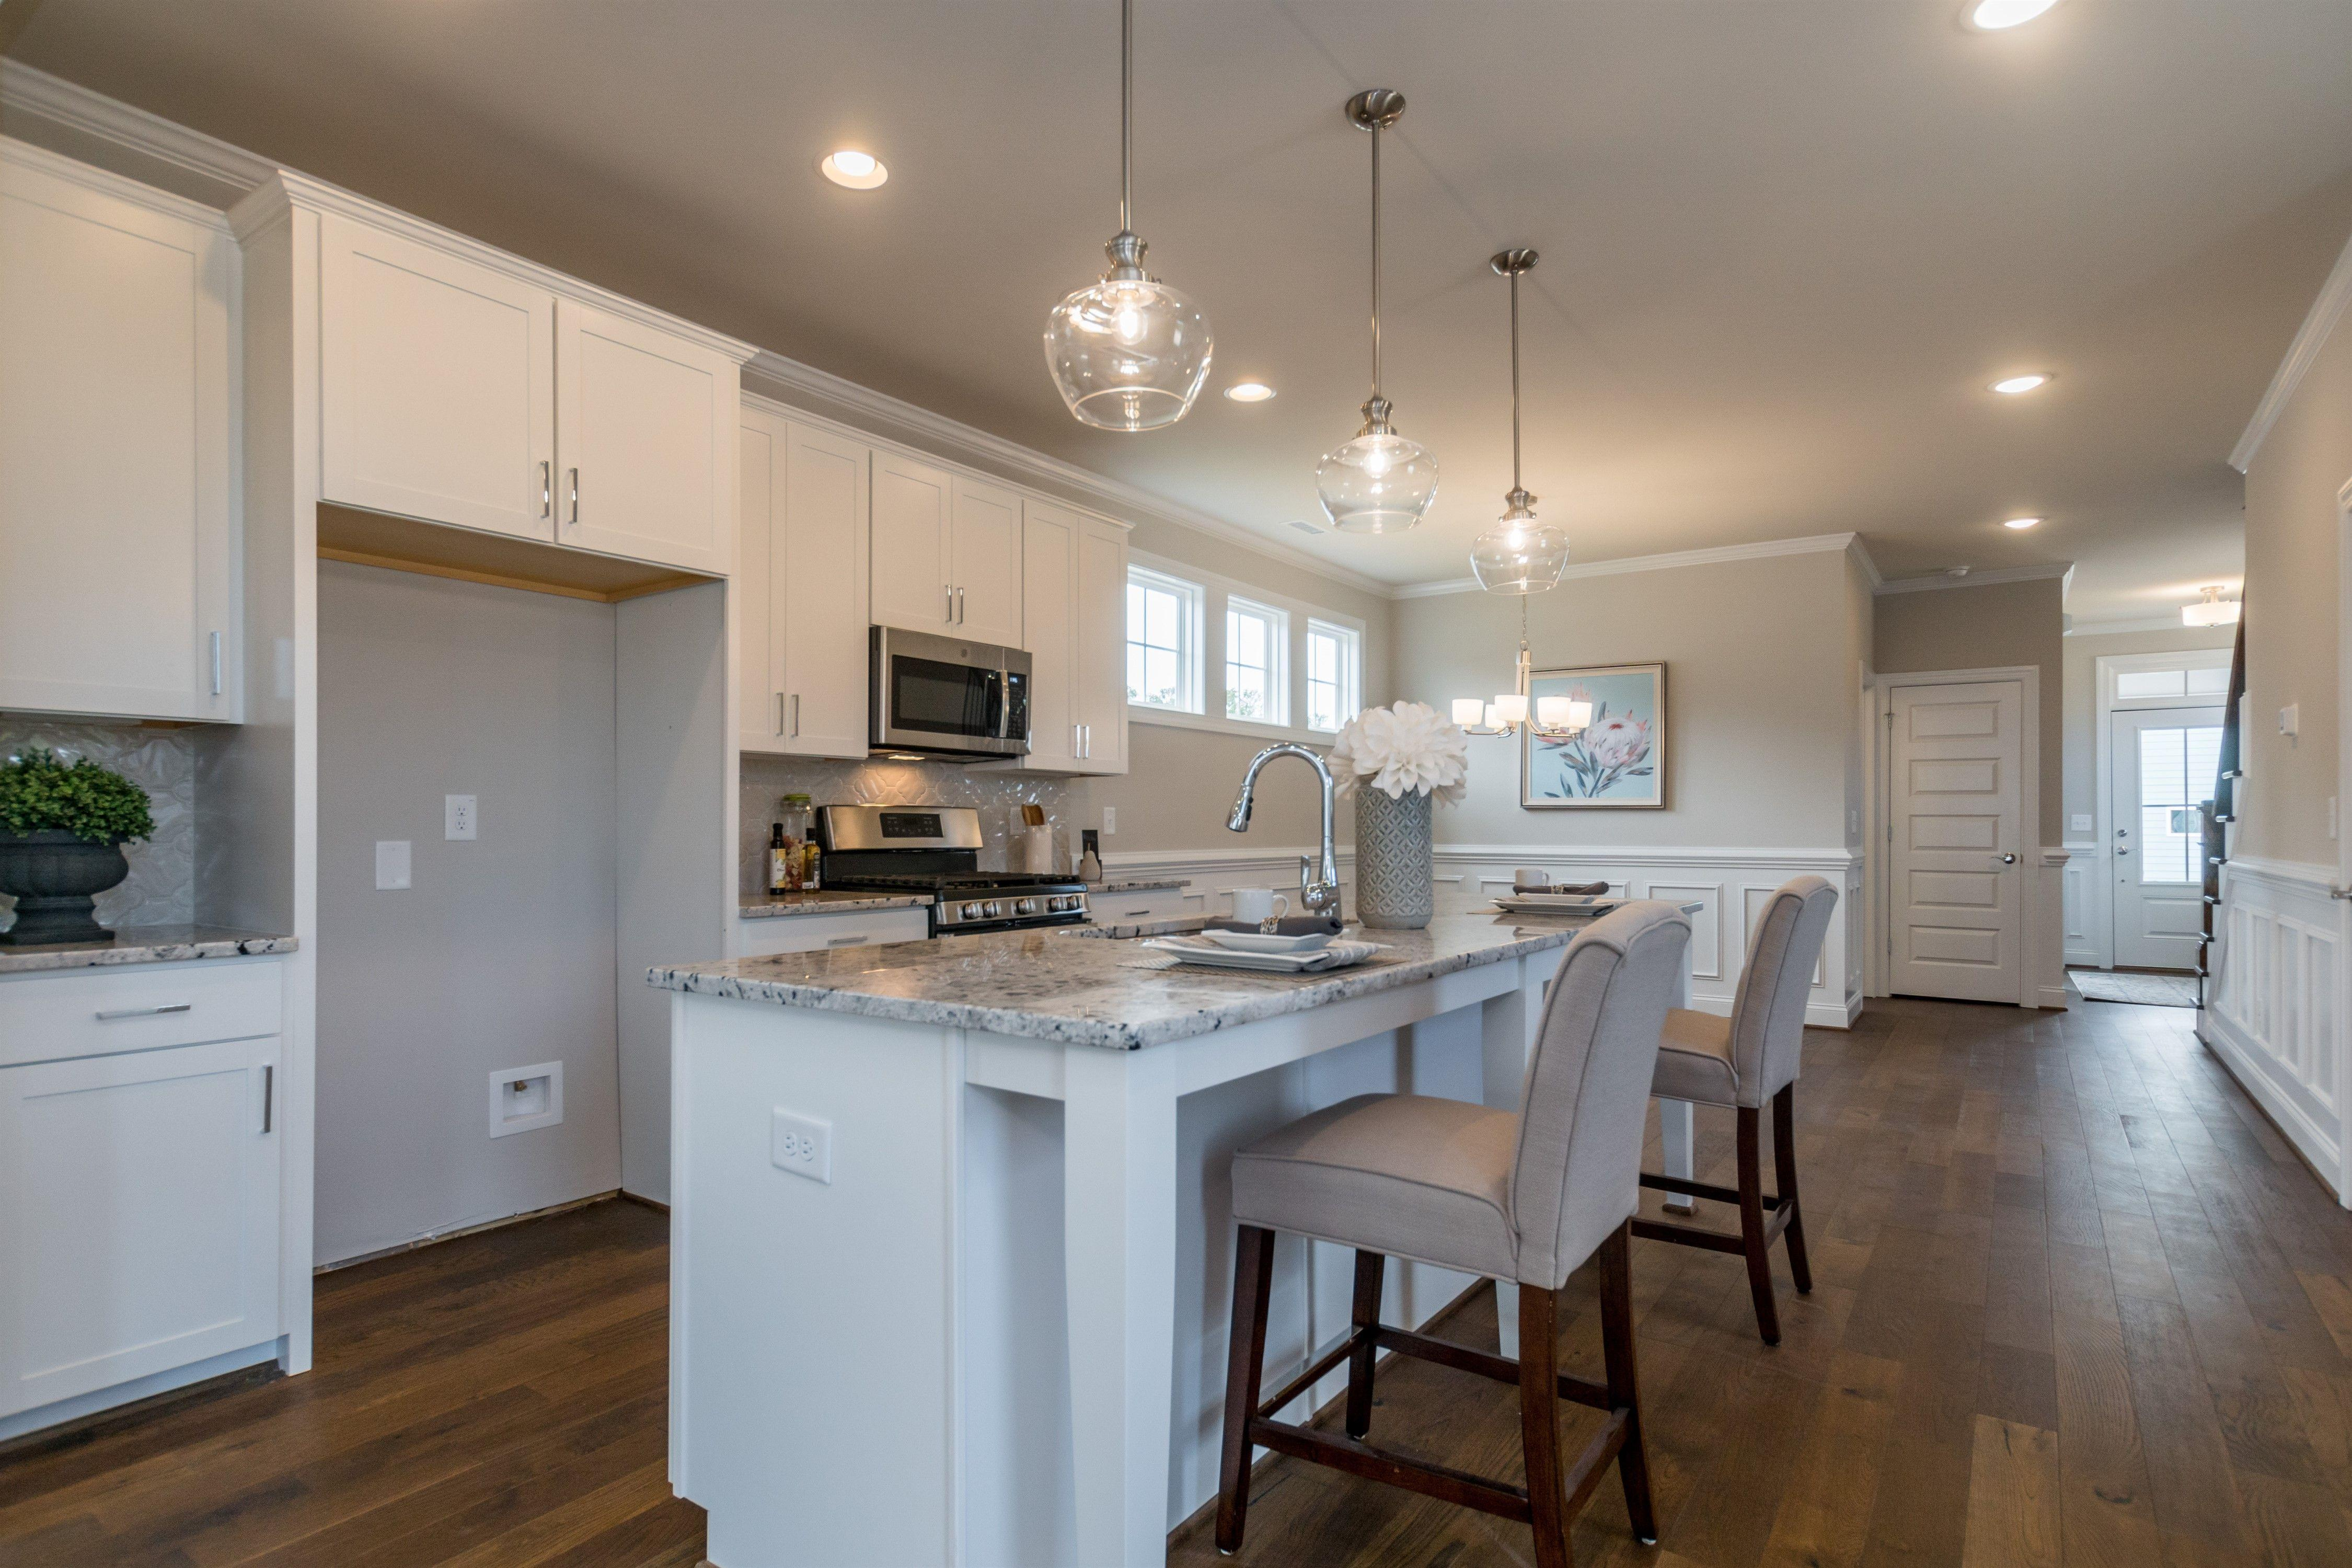 Kitchen featured in the Perry Urban By Prewitt Custom and Walker D.B.